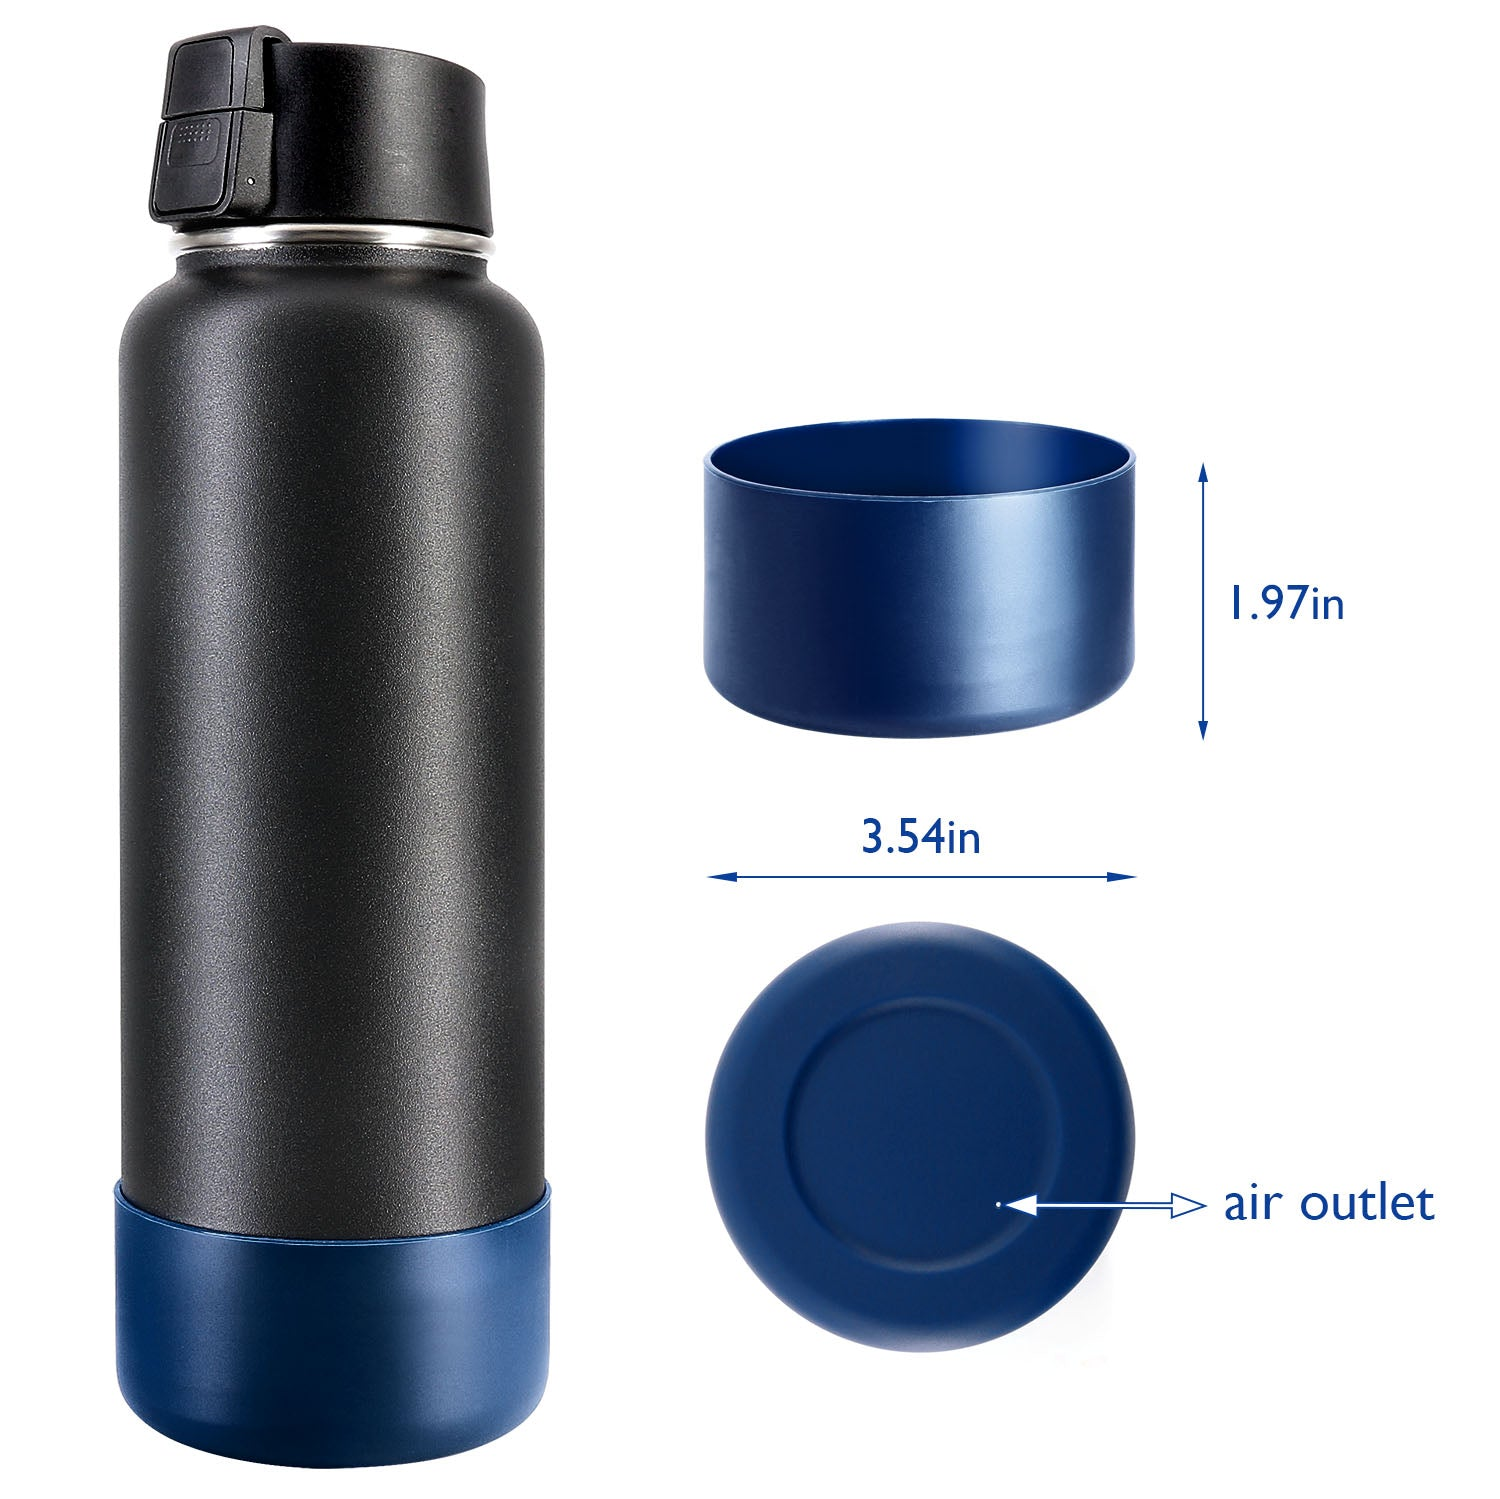 Protective Silicone Bottle Boot/Sleeve for Bottles, BPA Free Anti-Slip Bottom Cover Cap for Stainless Steel Water Bottle, Dishwasher Safe